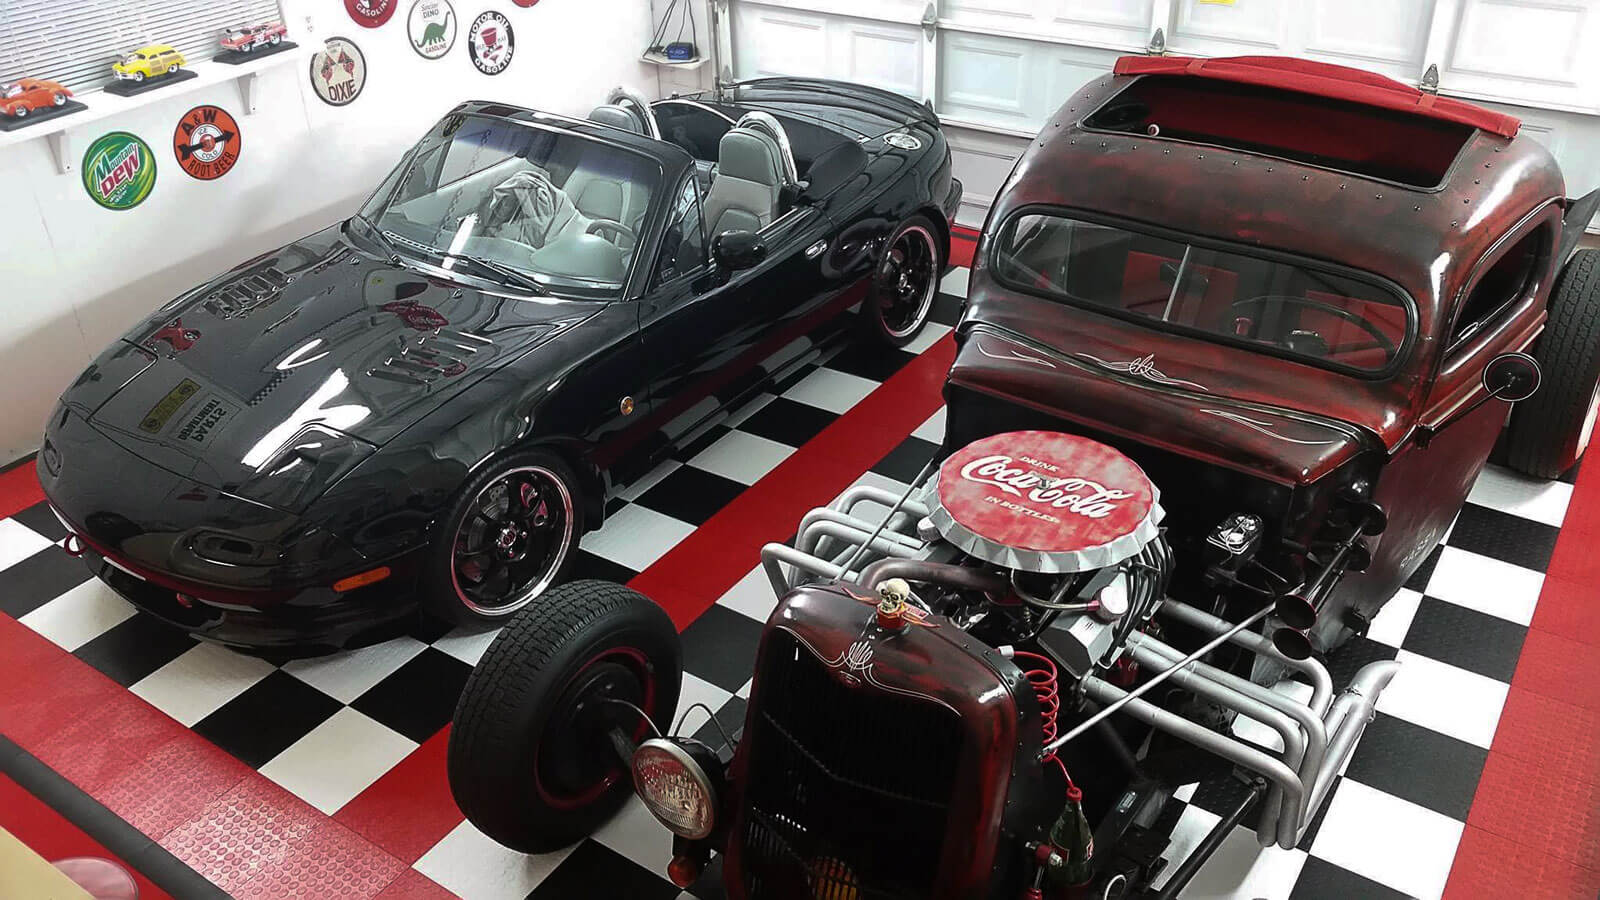 Hot rod garage with checkered black and white RaceDeck Diamond, with red CircleTrac accents.